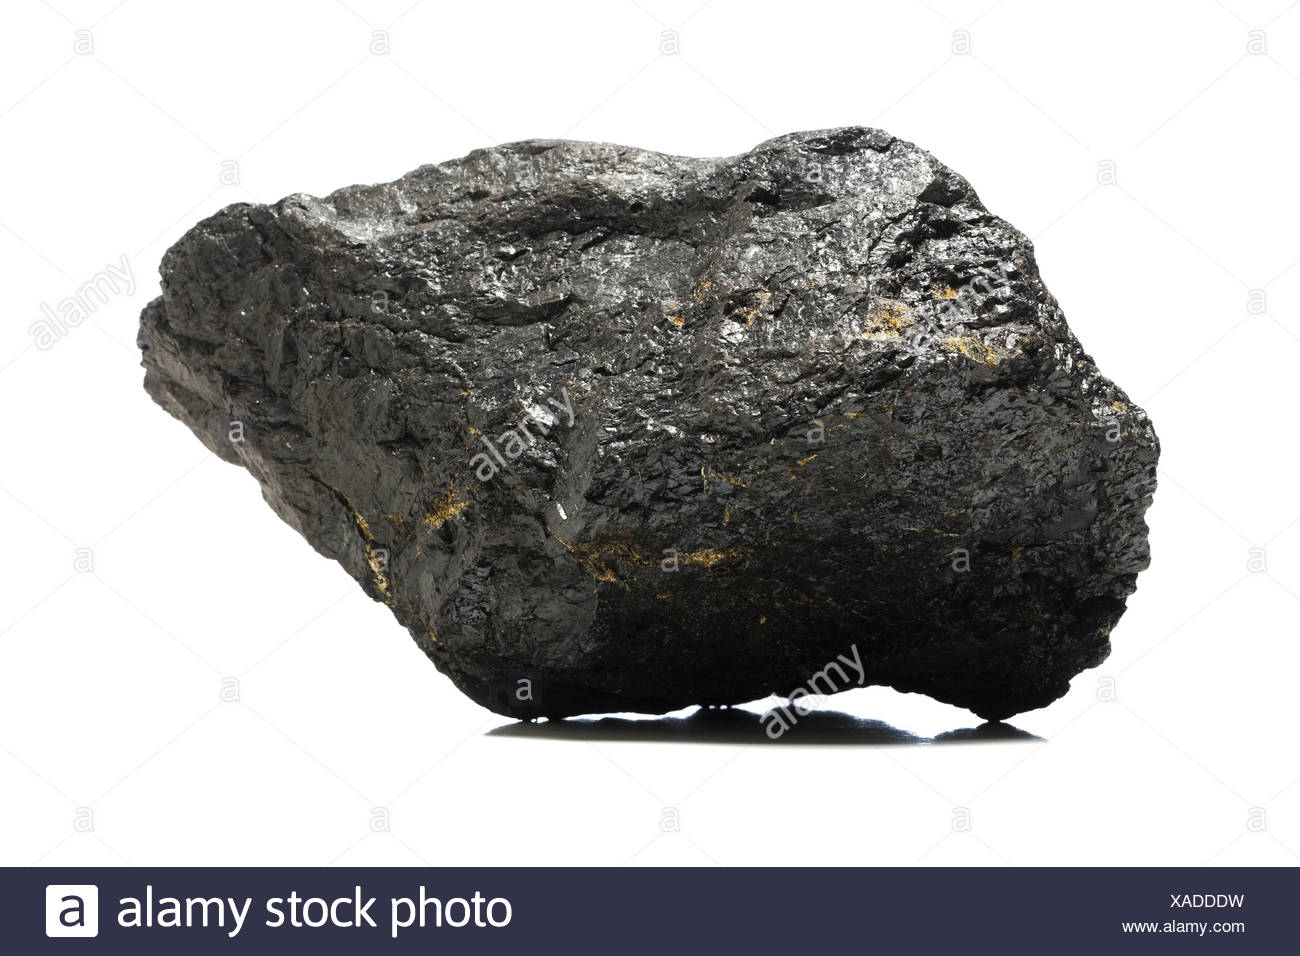 A piece of coal. - Stock Image